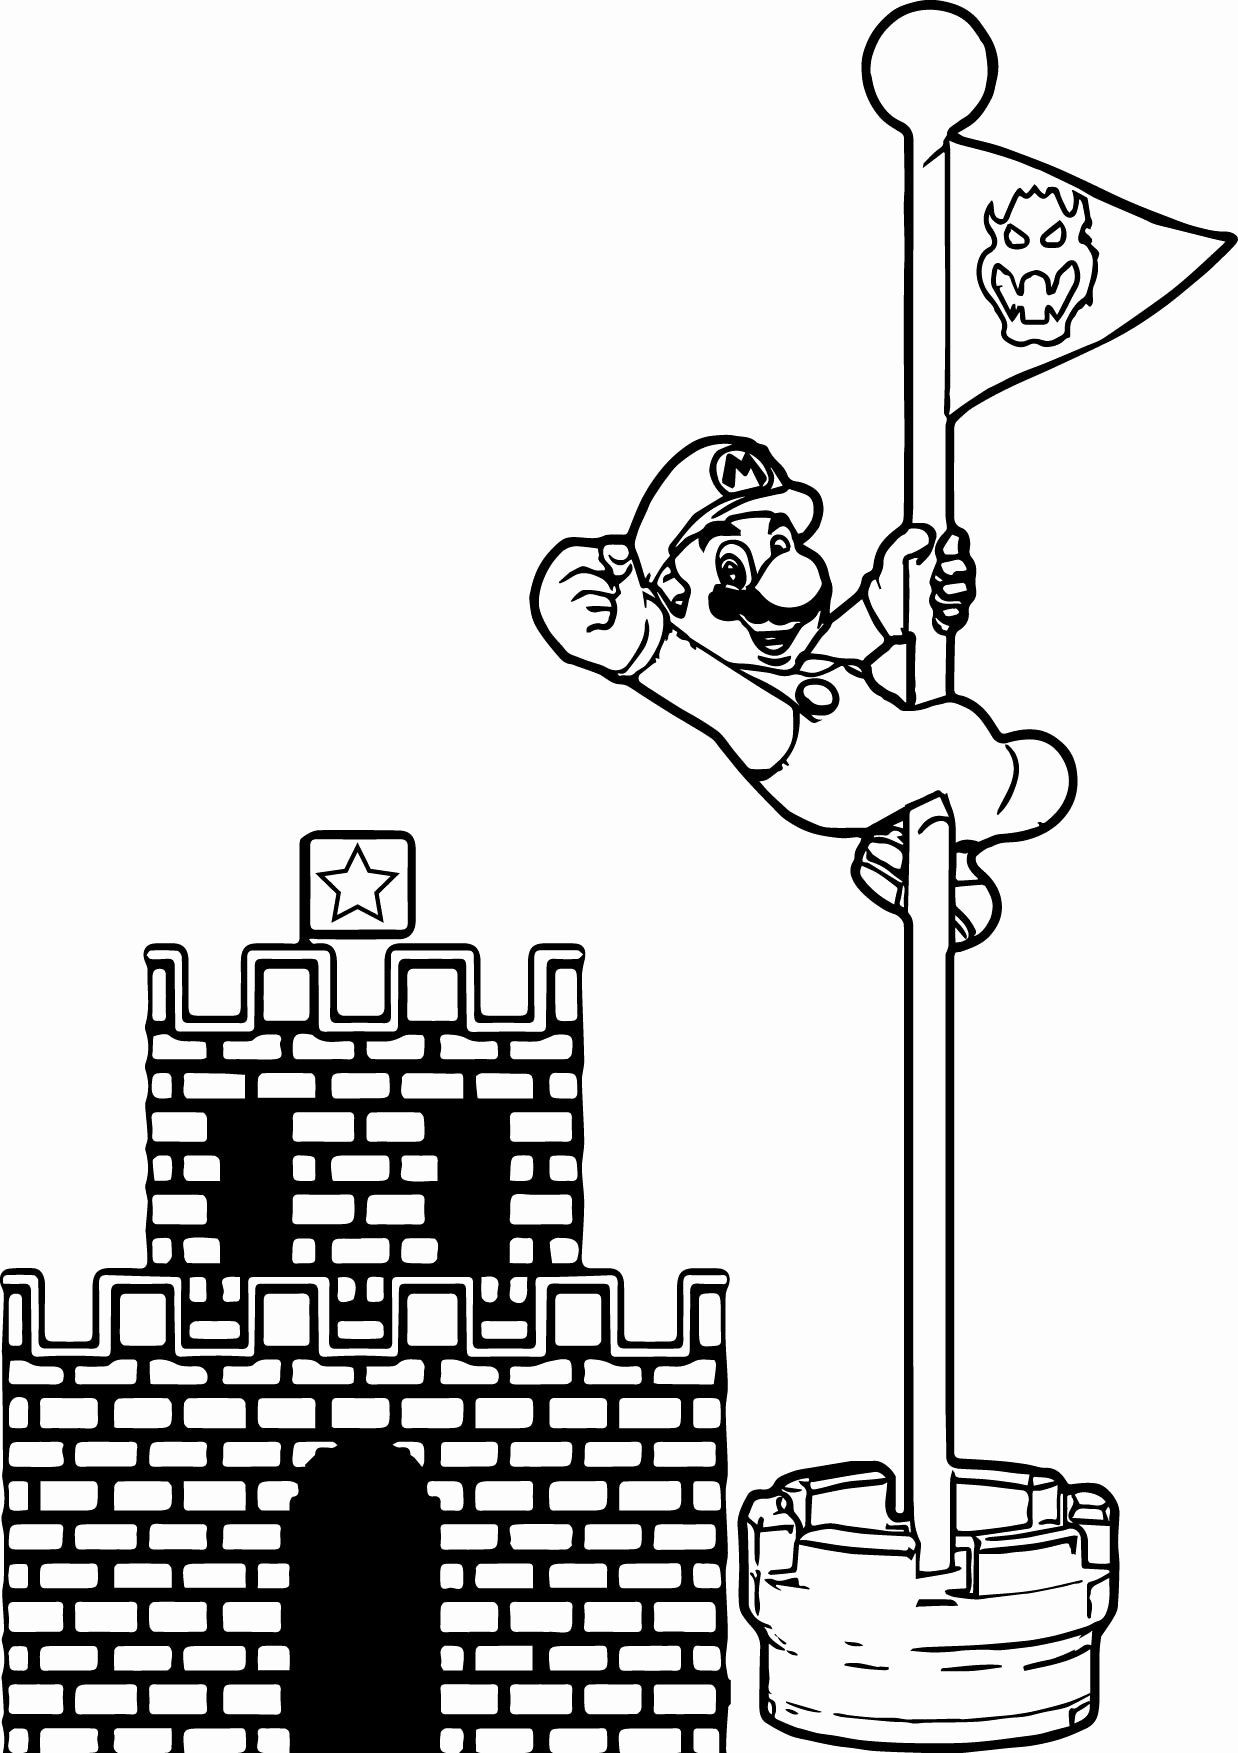 free printable super mario coloring pages super mario coloring pages free printable coloring pages super pages printable coloring free mario